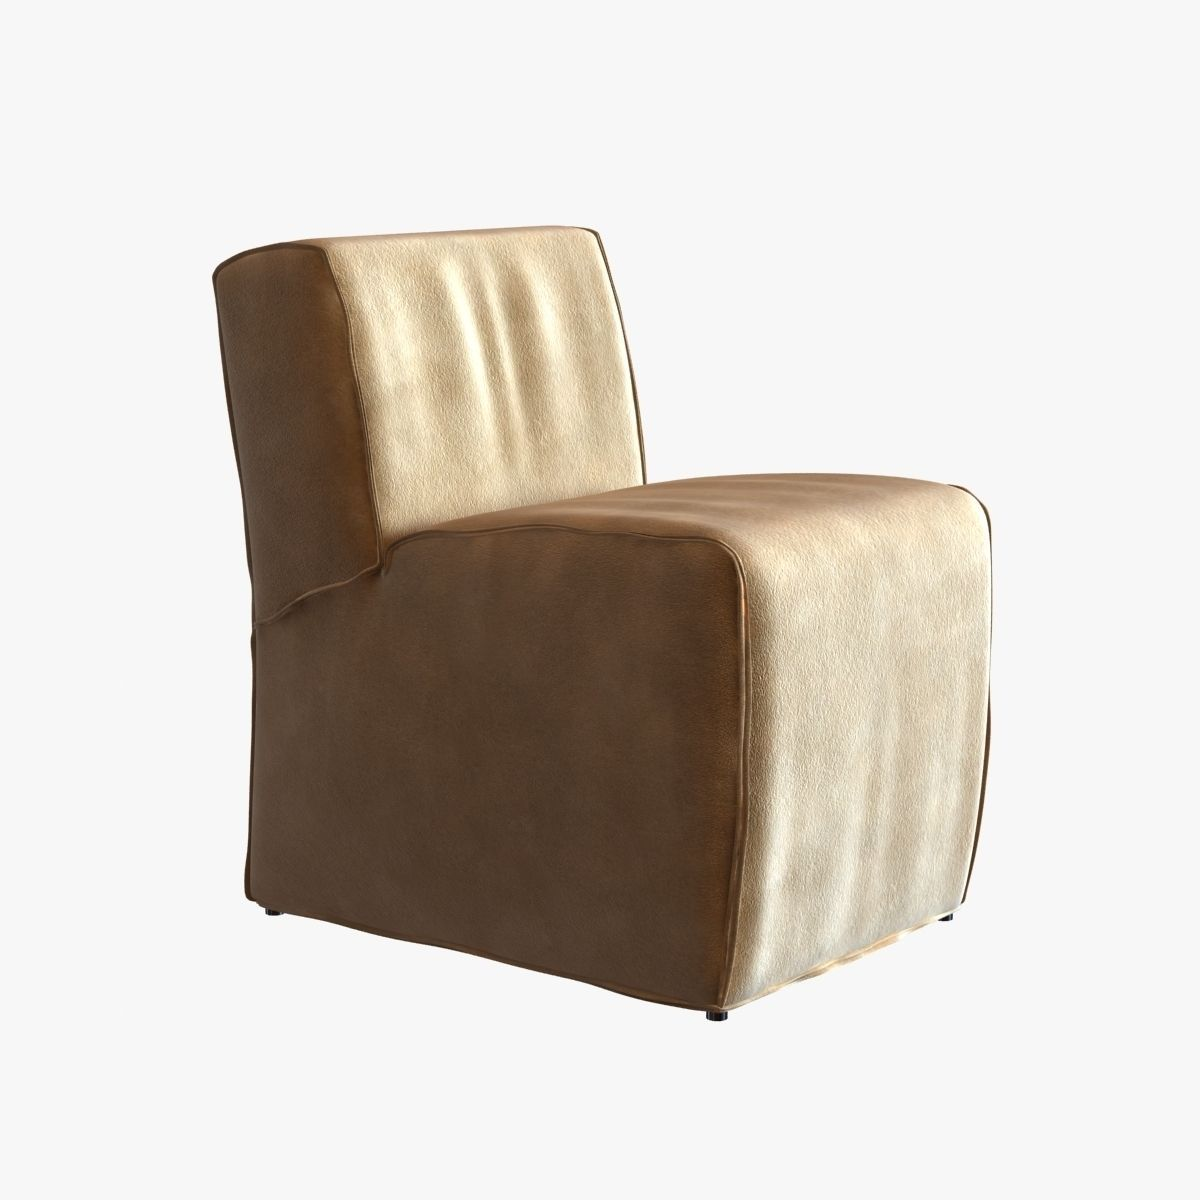 Soft Suede Armless Chair 3d Model Max Obj 3ds Fbx Mtl Unitypackage 1 ...